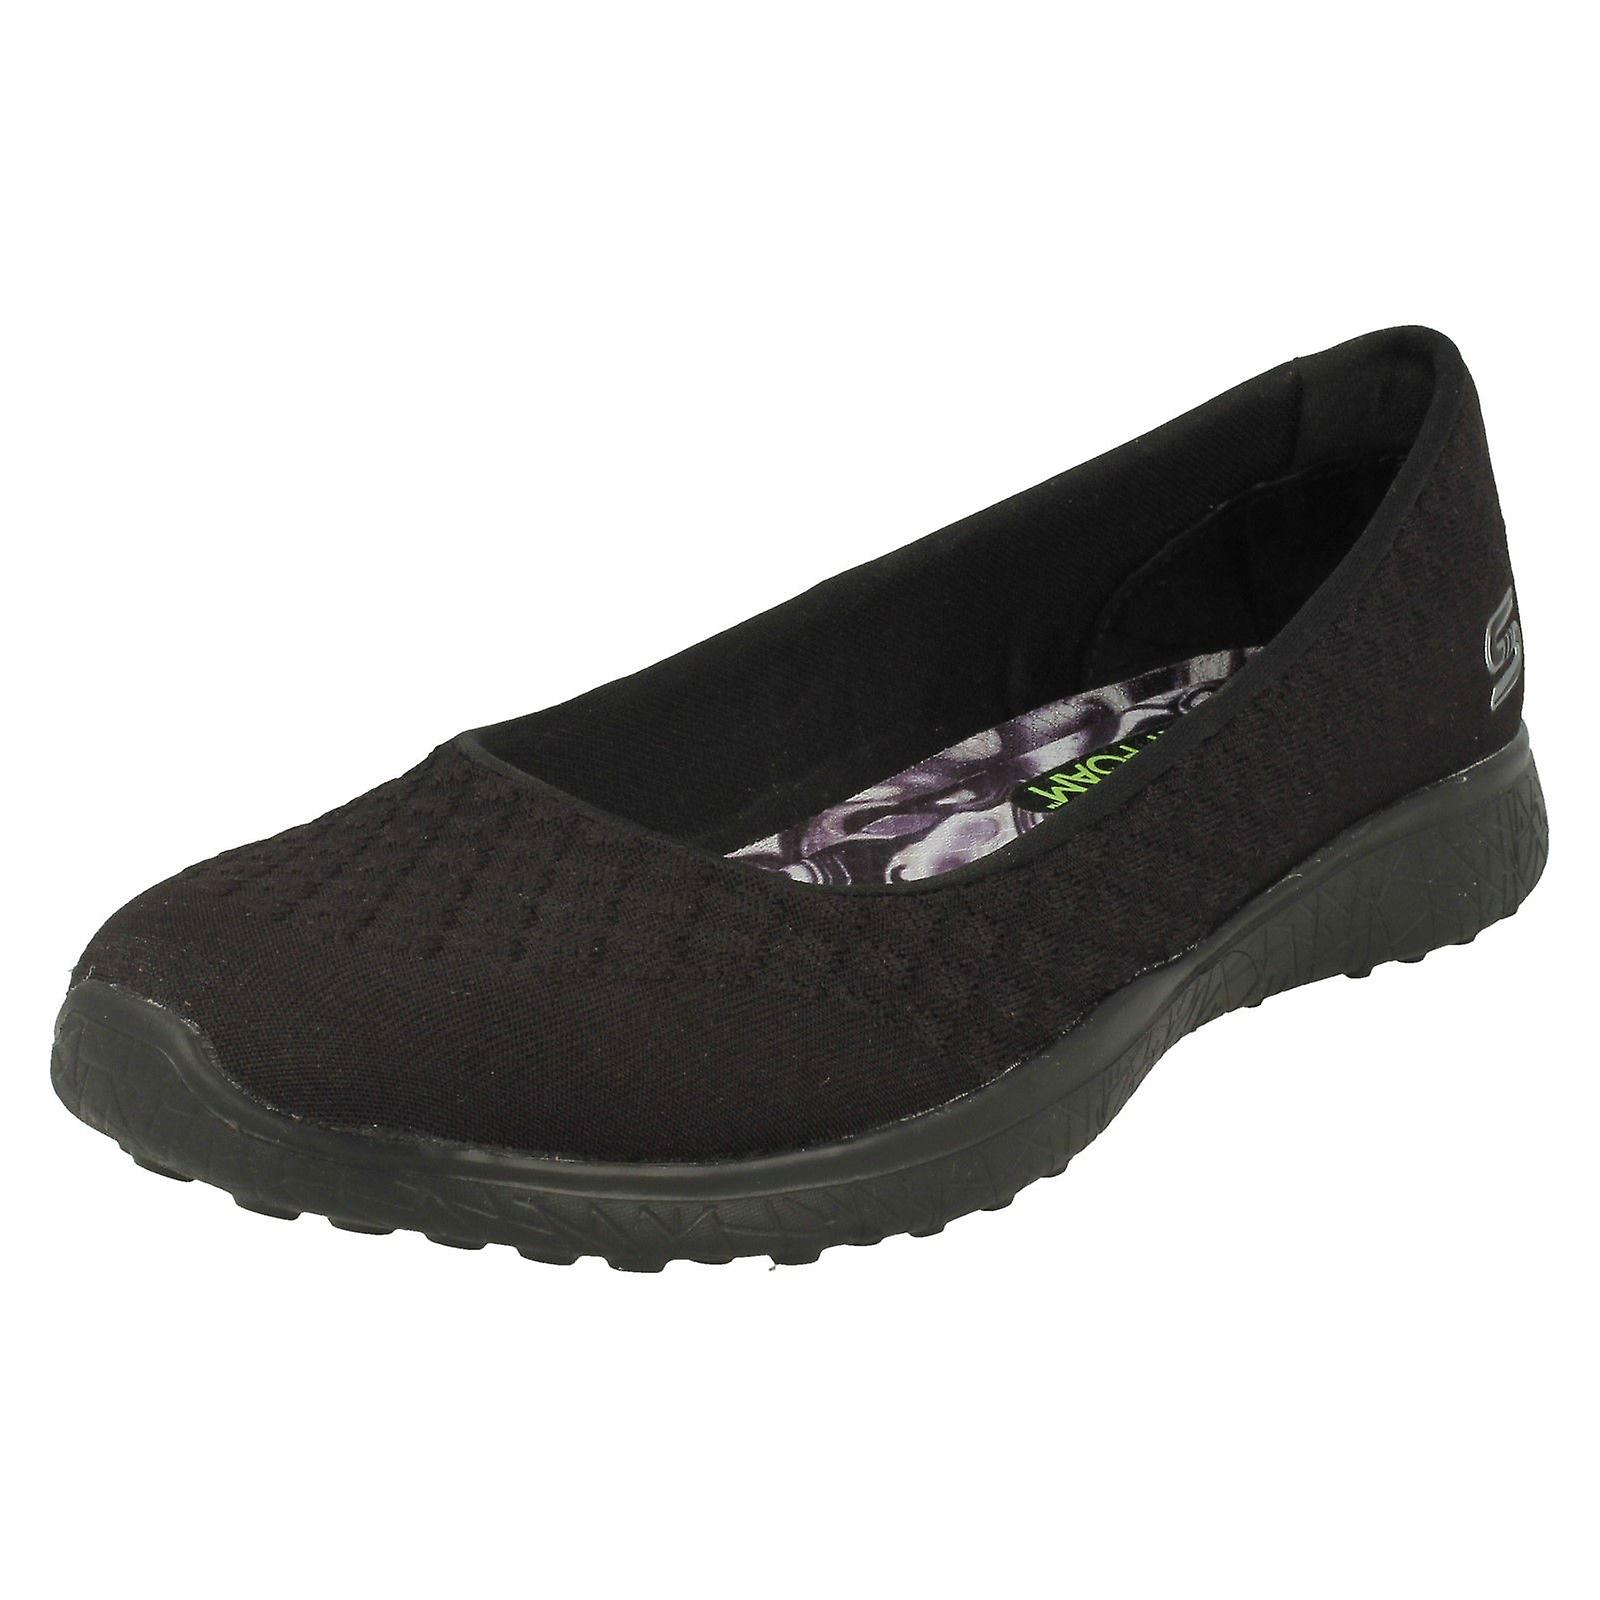 skechers memory foam ladies shoes